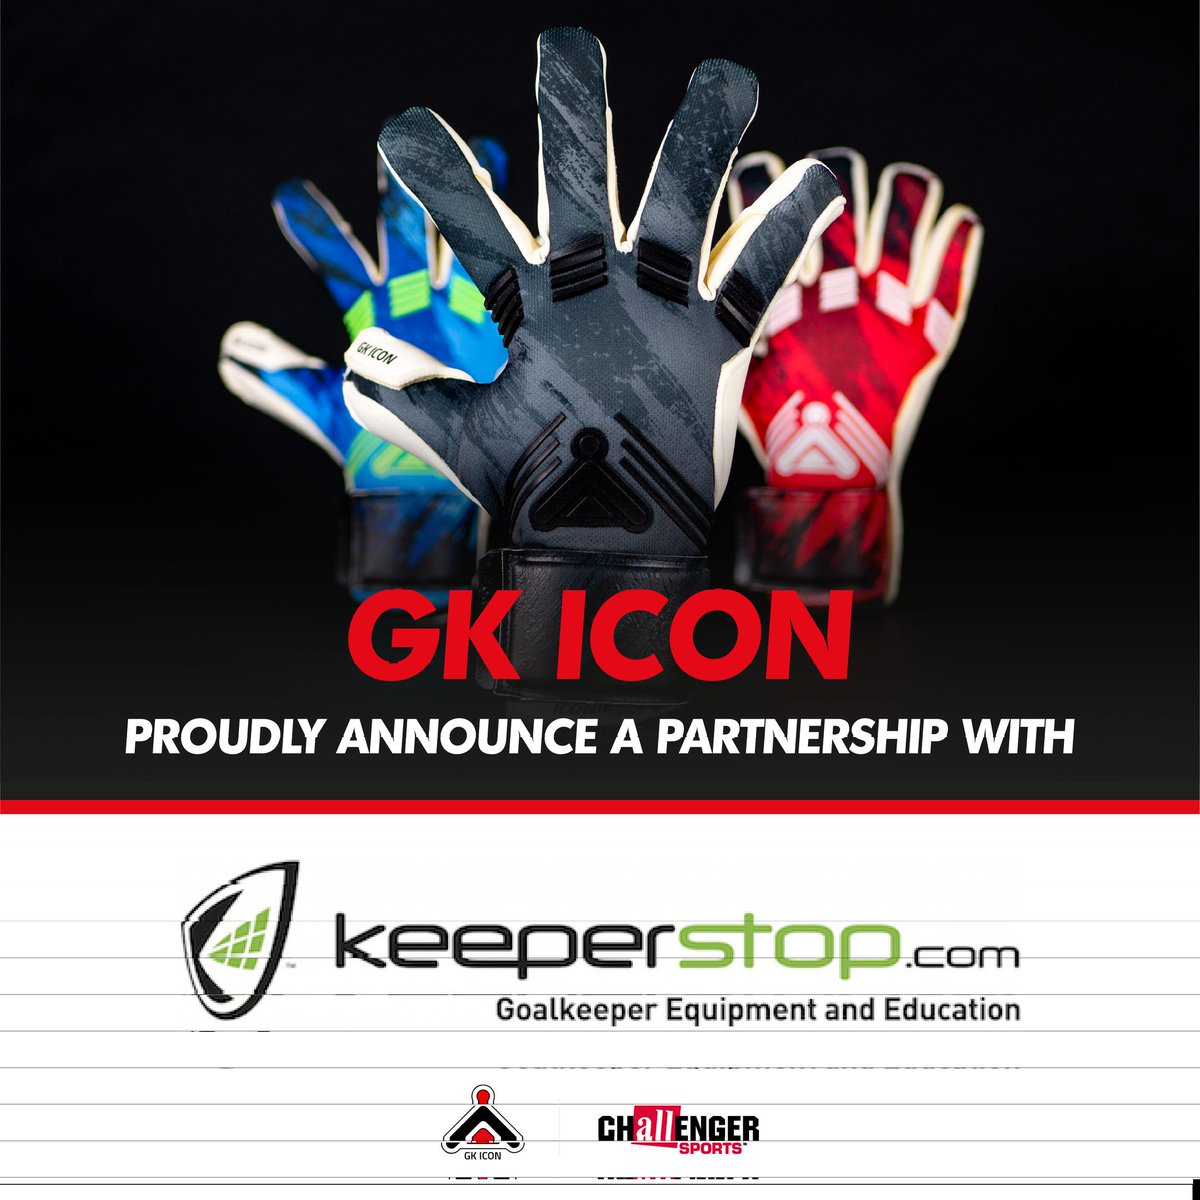 c754ad26ef3 Keeperstop are the great resource for all goalkeeping equipment and advice  #ChallengerSports #forthenextGEN #keeperstoppic.twitter.com/41haG88elB